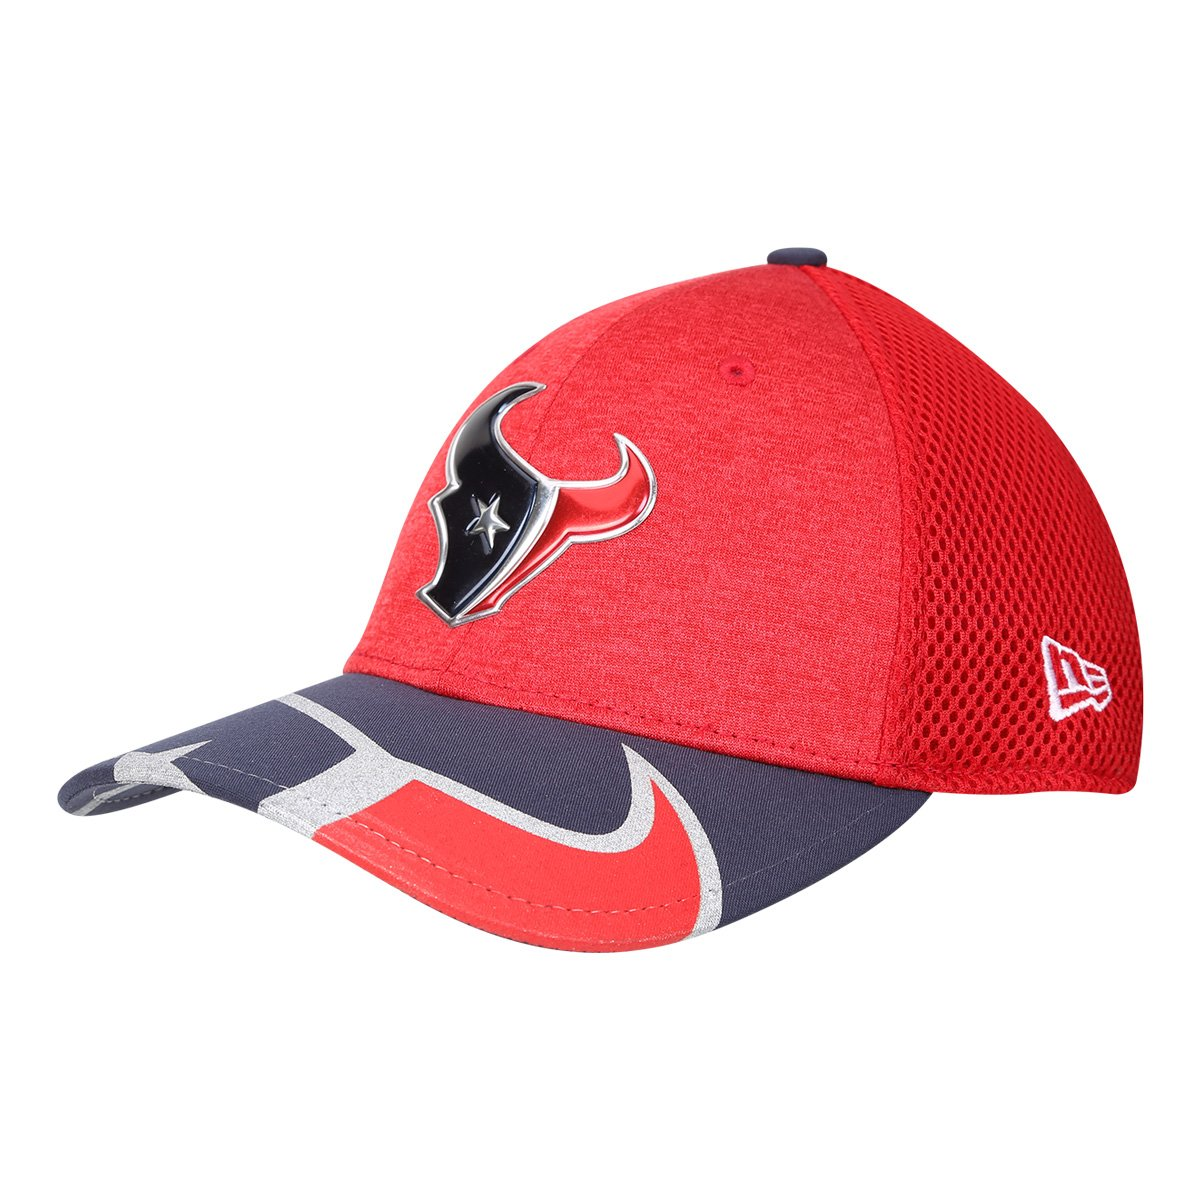 5109cce19c Boné New Era NFL Houston Texans Aba Curva 3930 On Stage Masculino